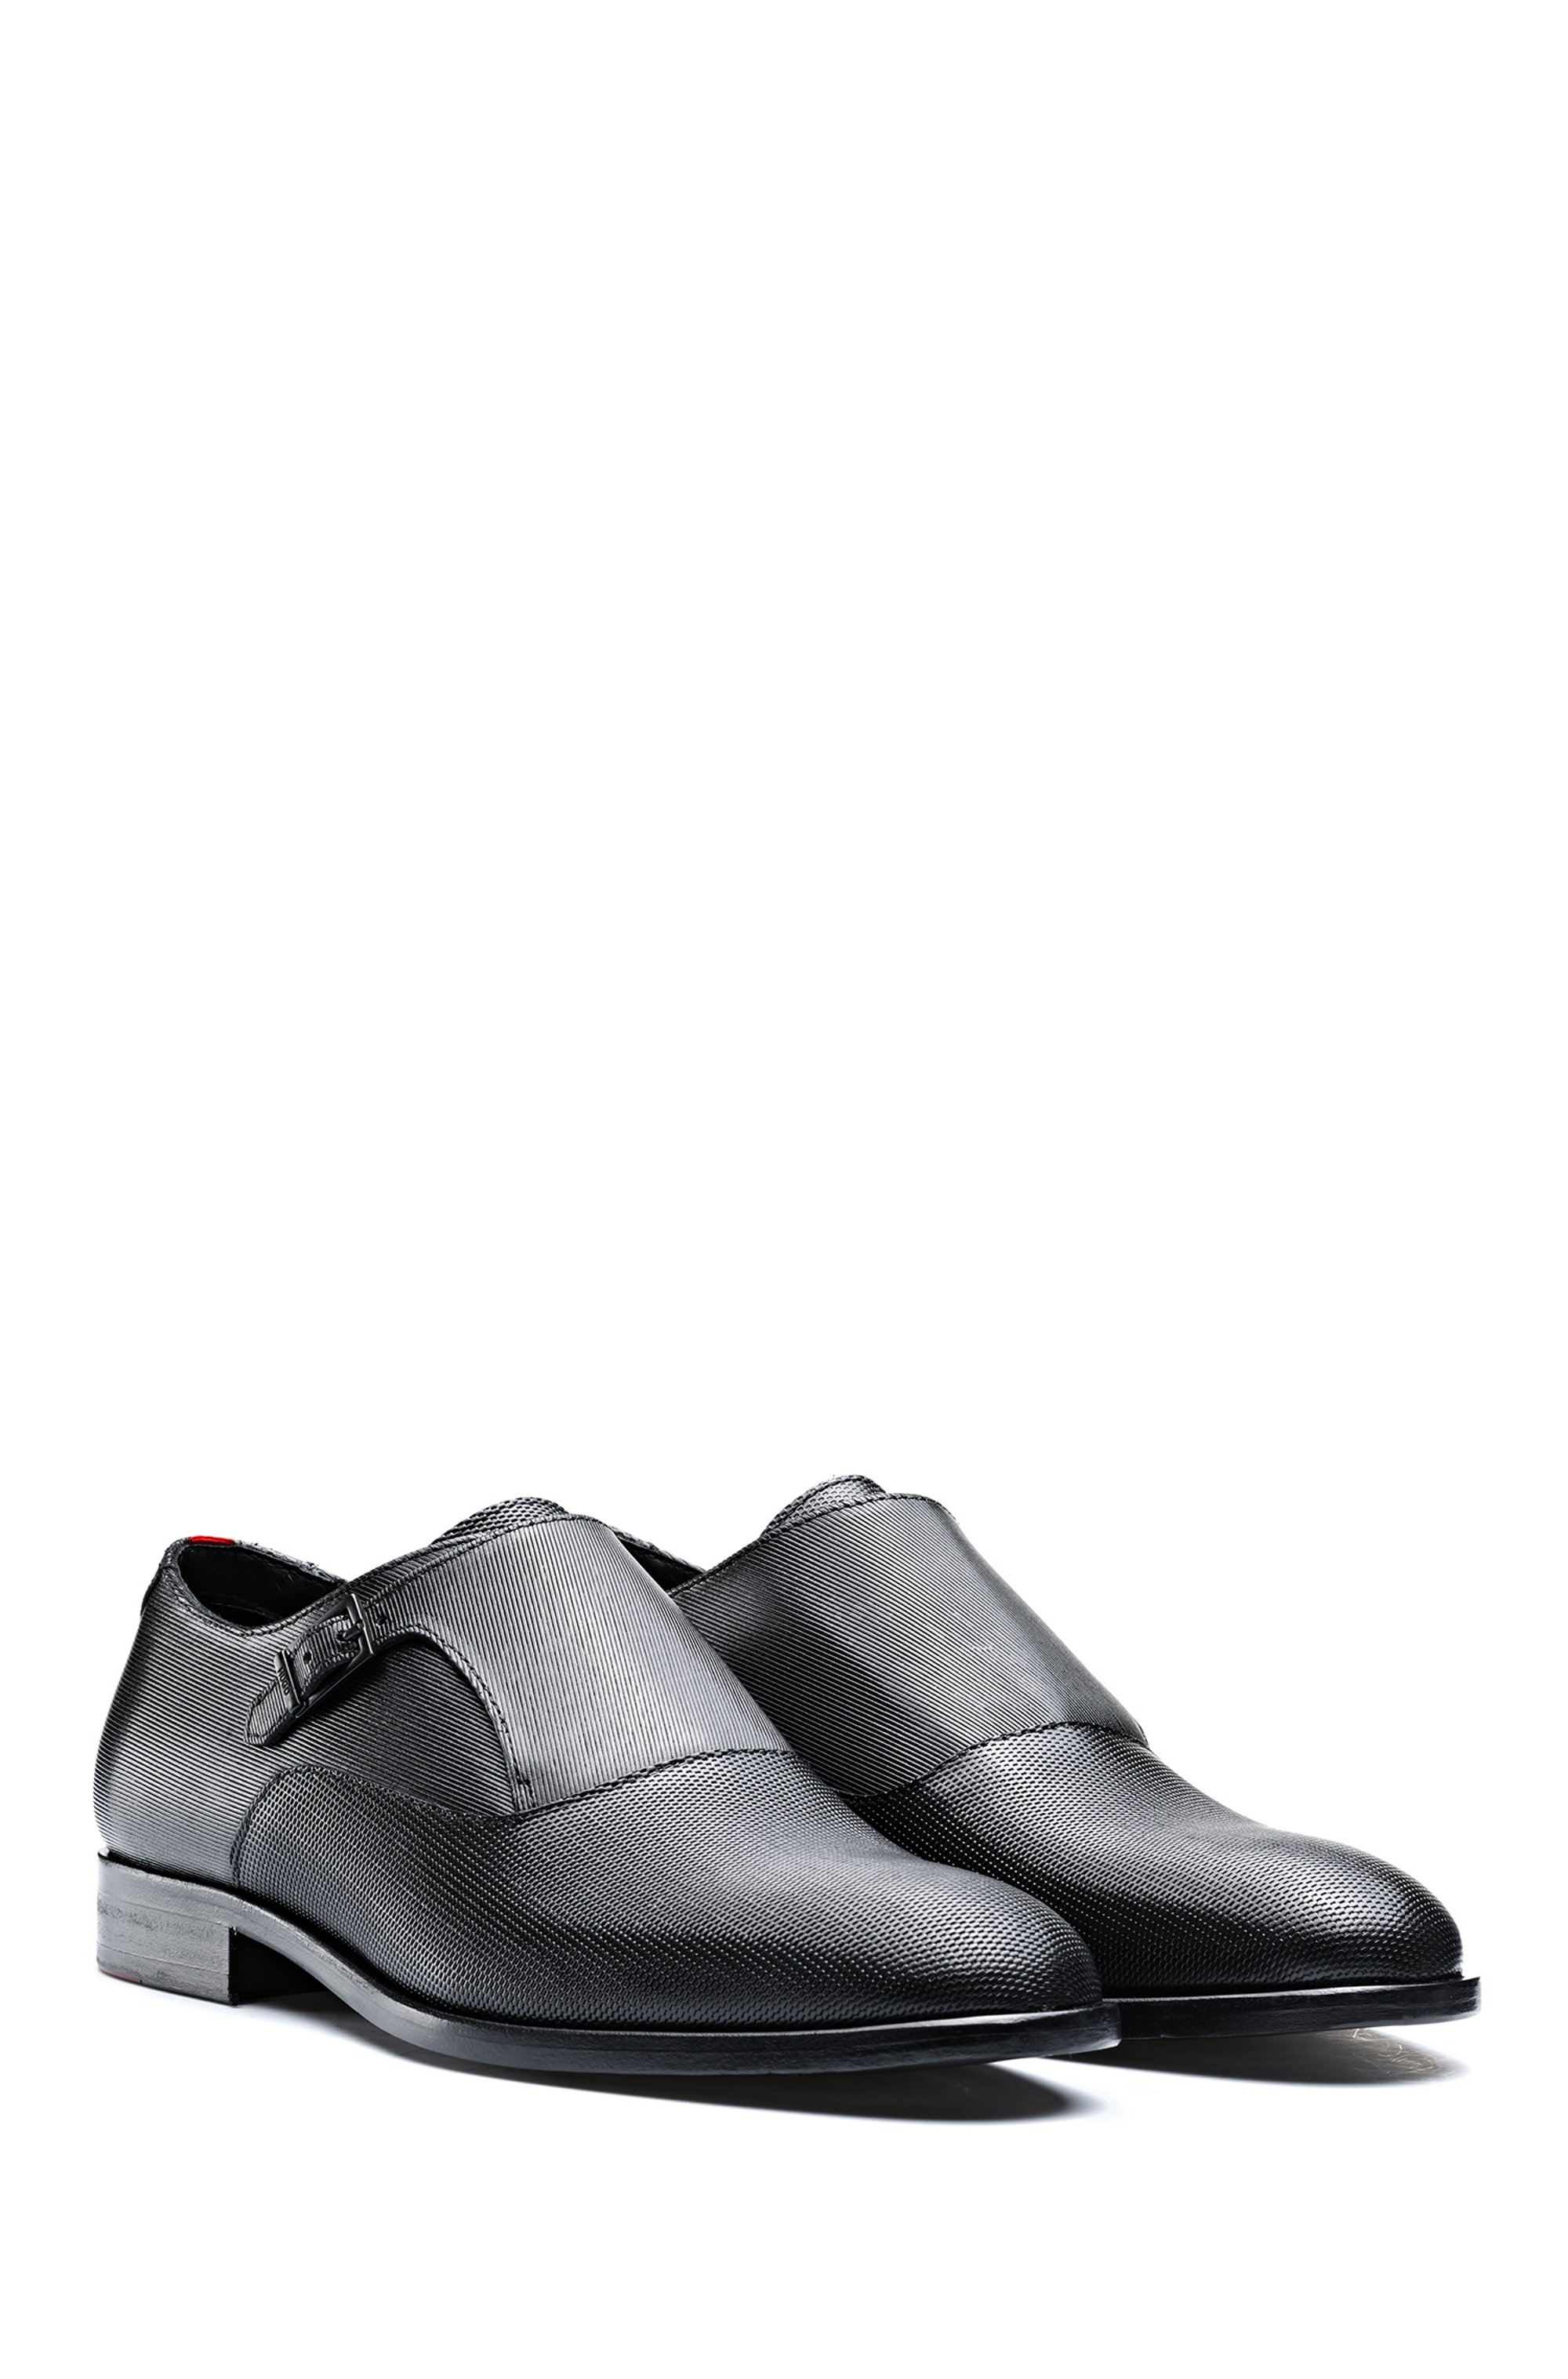 Monk shoes in printed leather with stitched details